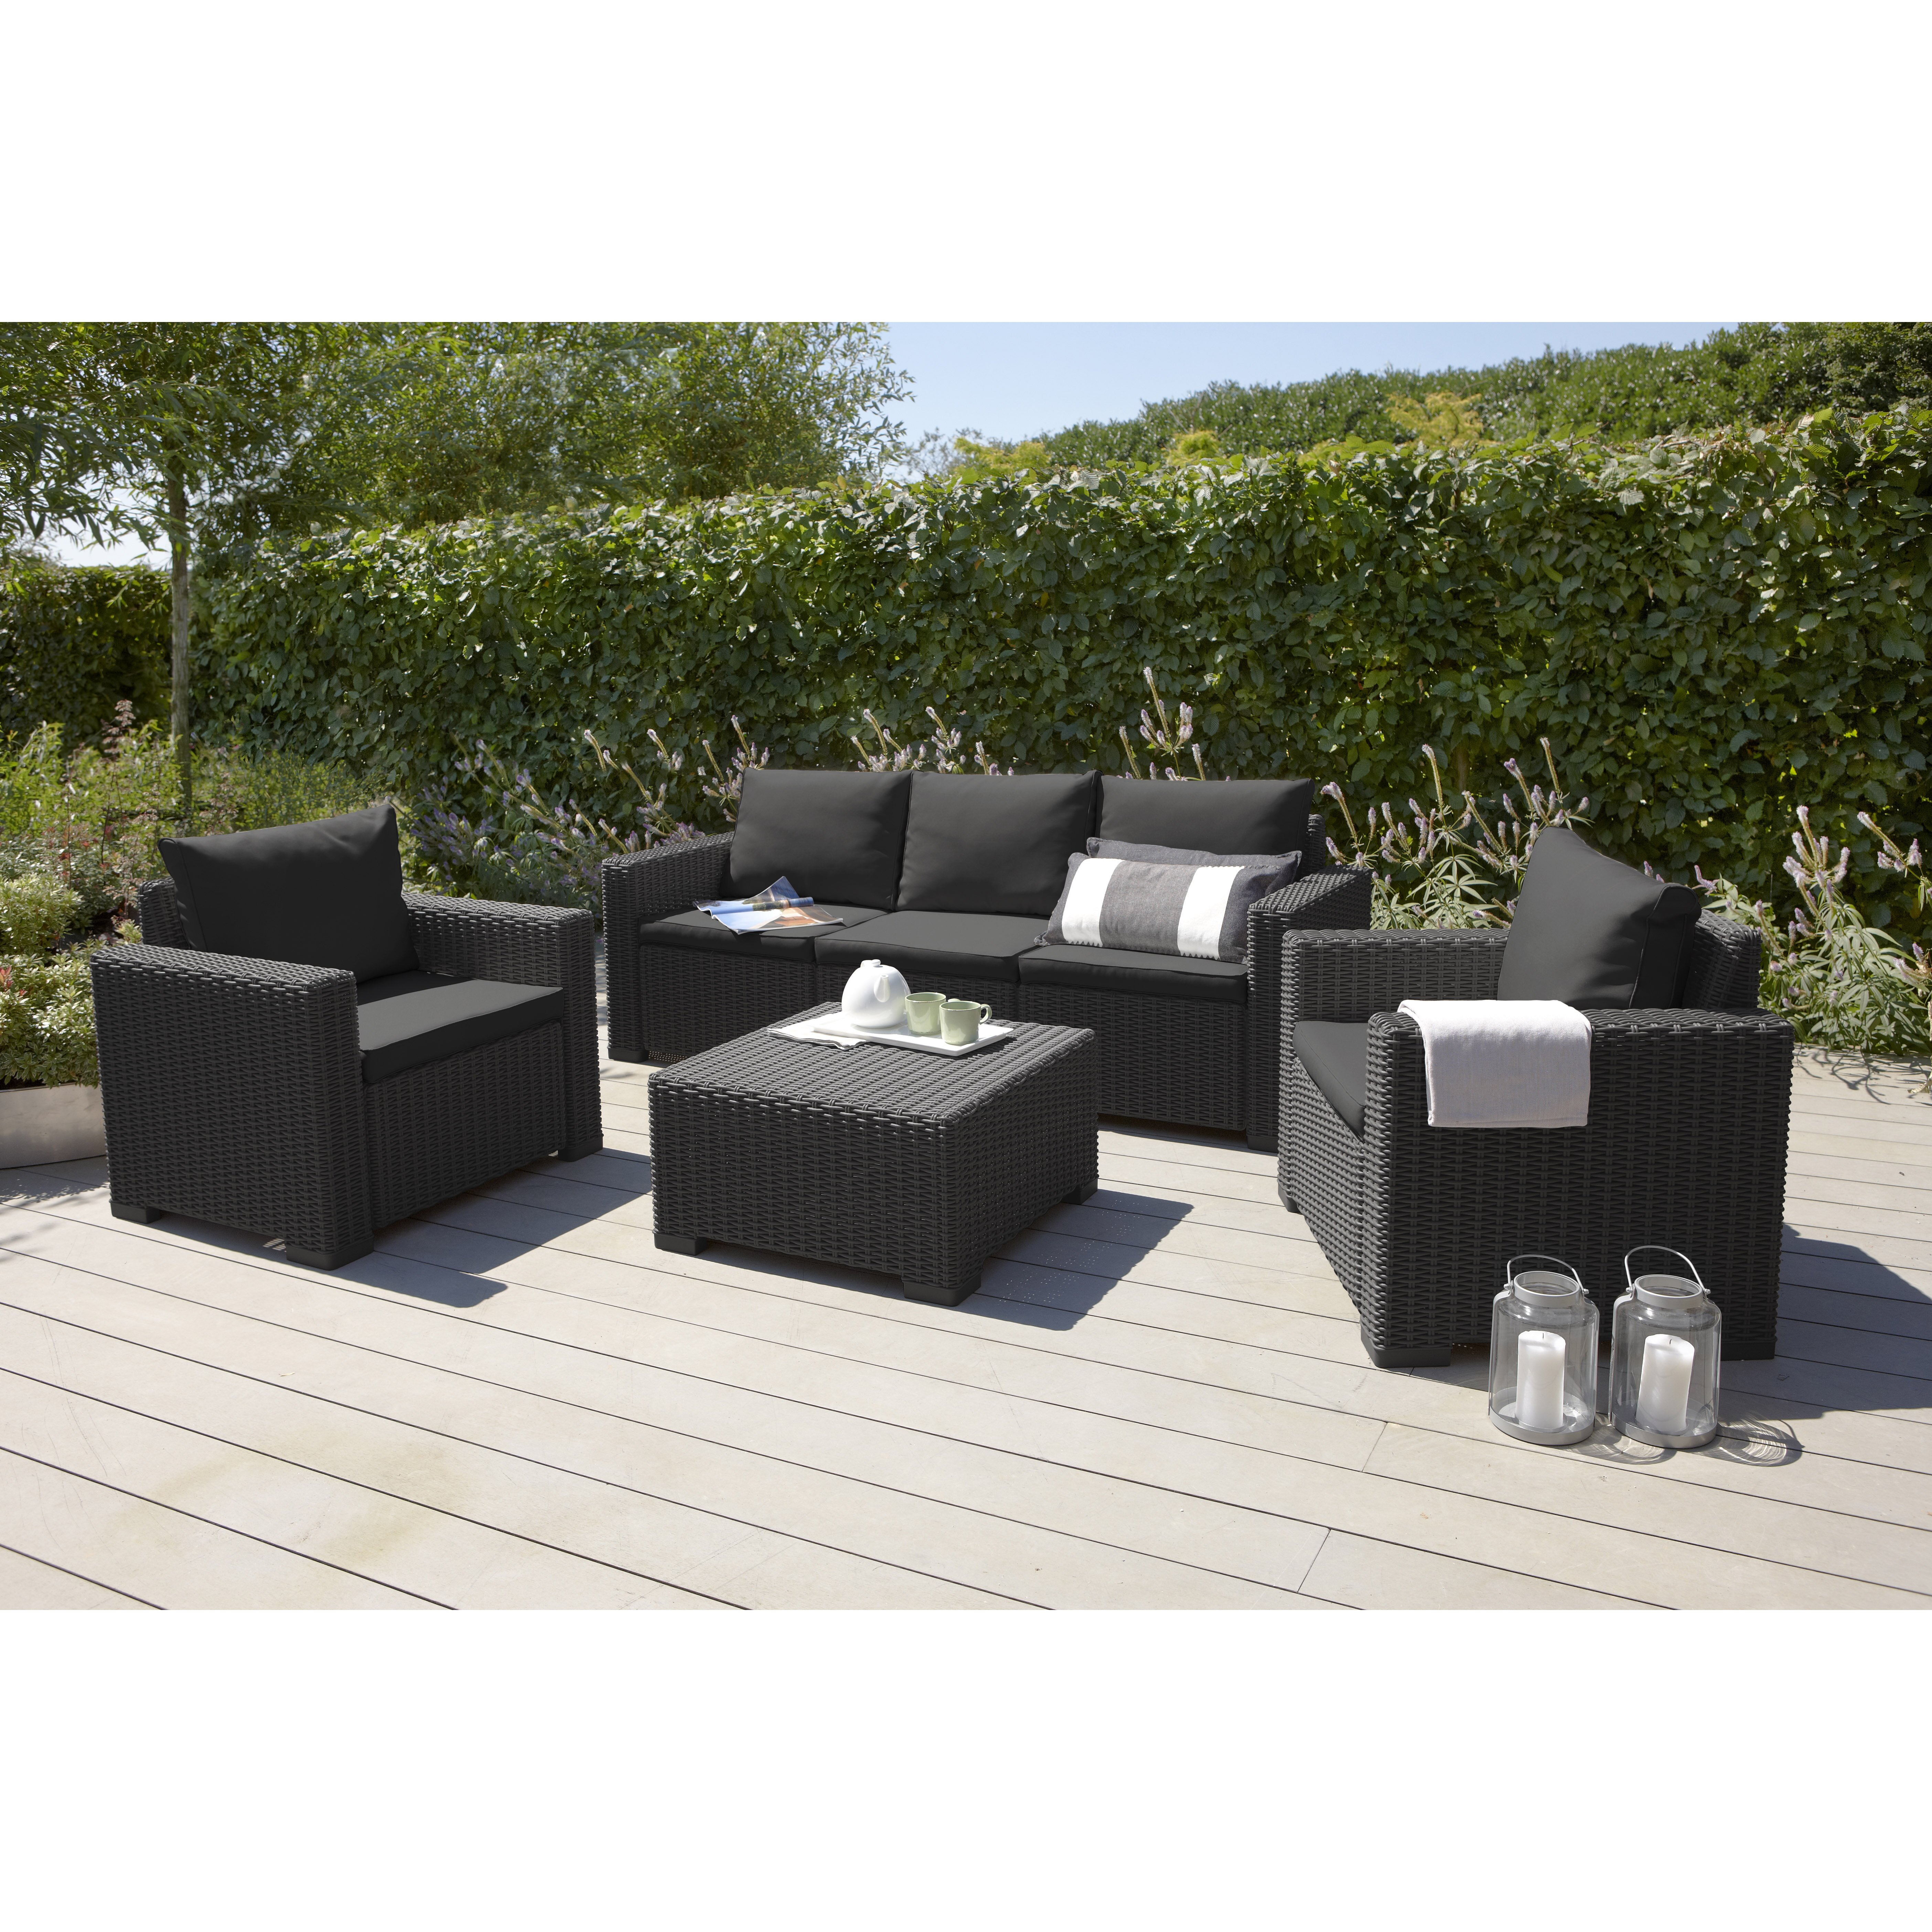 Small Sofas For Conservatories Refil Sofa